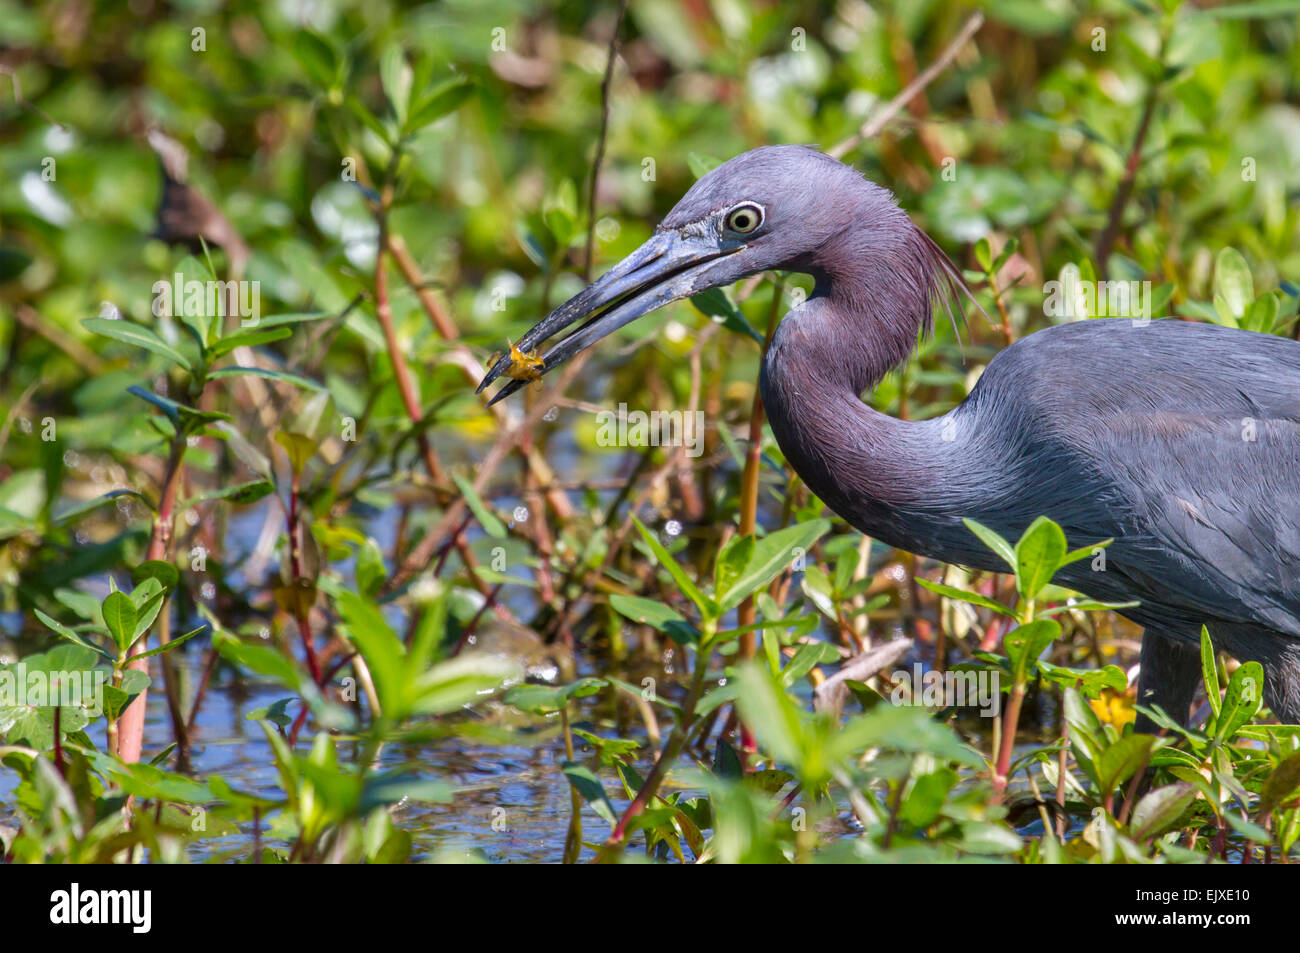 Little blue heron (Egretta caerulea) with caught shrimp in a swamp, Brazos Bend state park, Needville, Texas, USA. - Stock Image